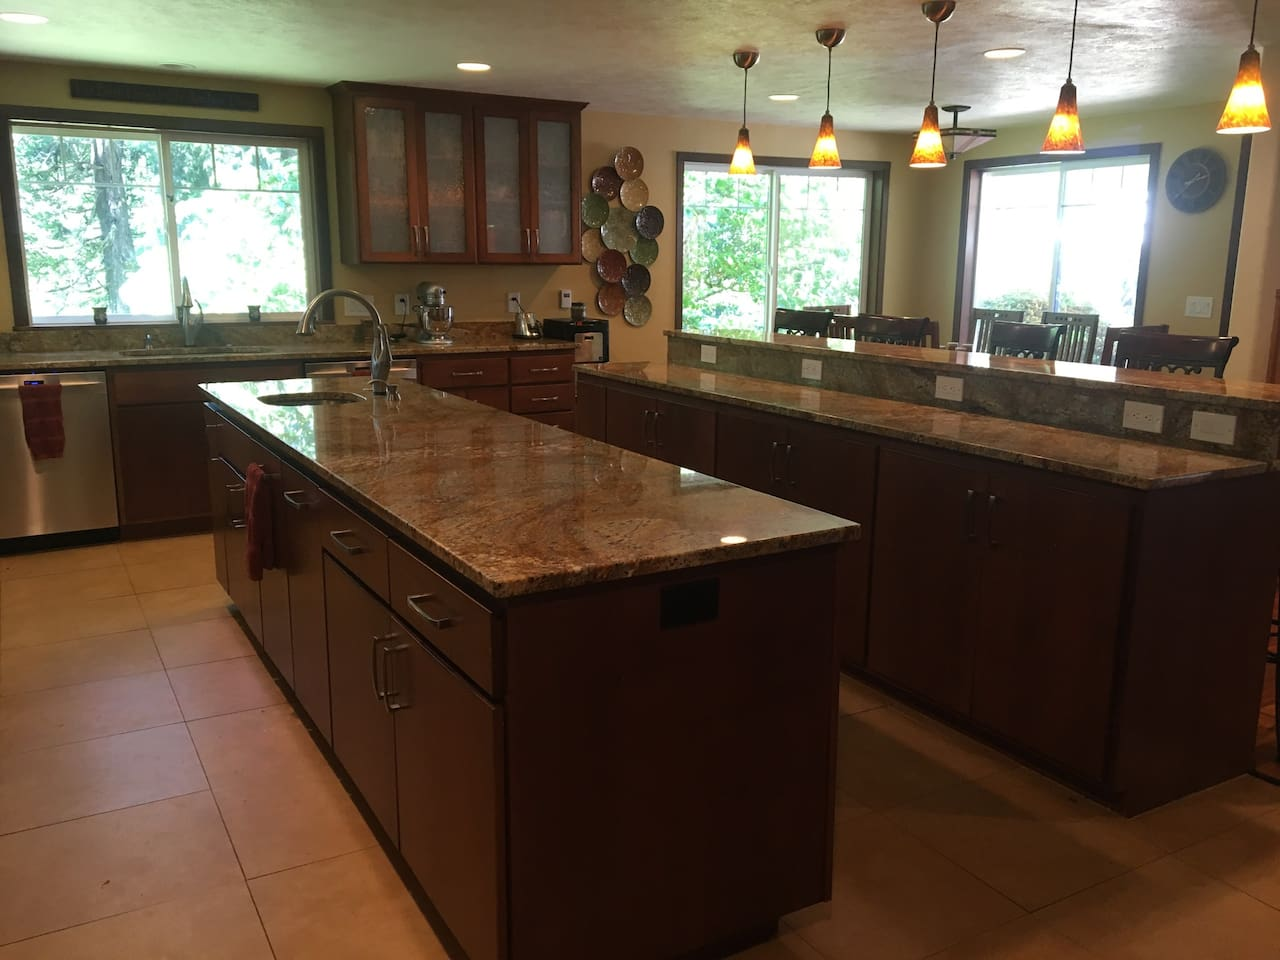 Amazing granite counters throughout the whole kitchen